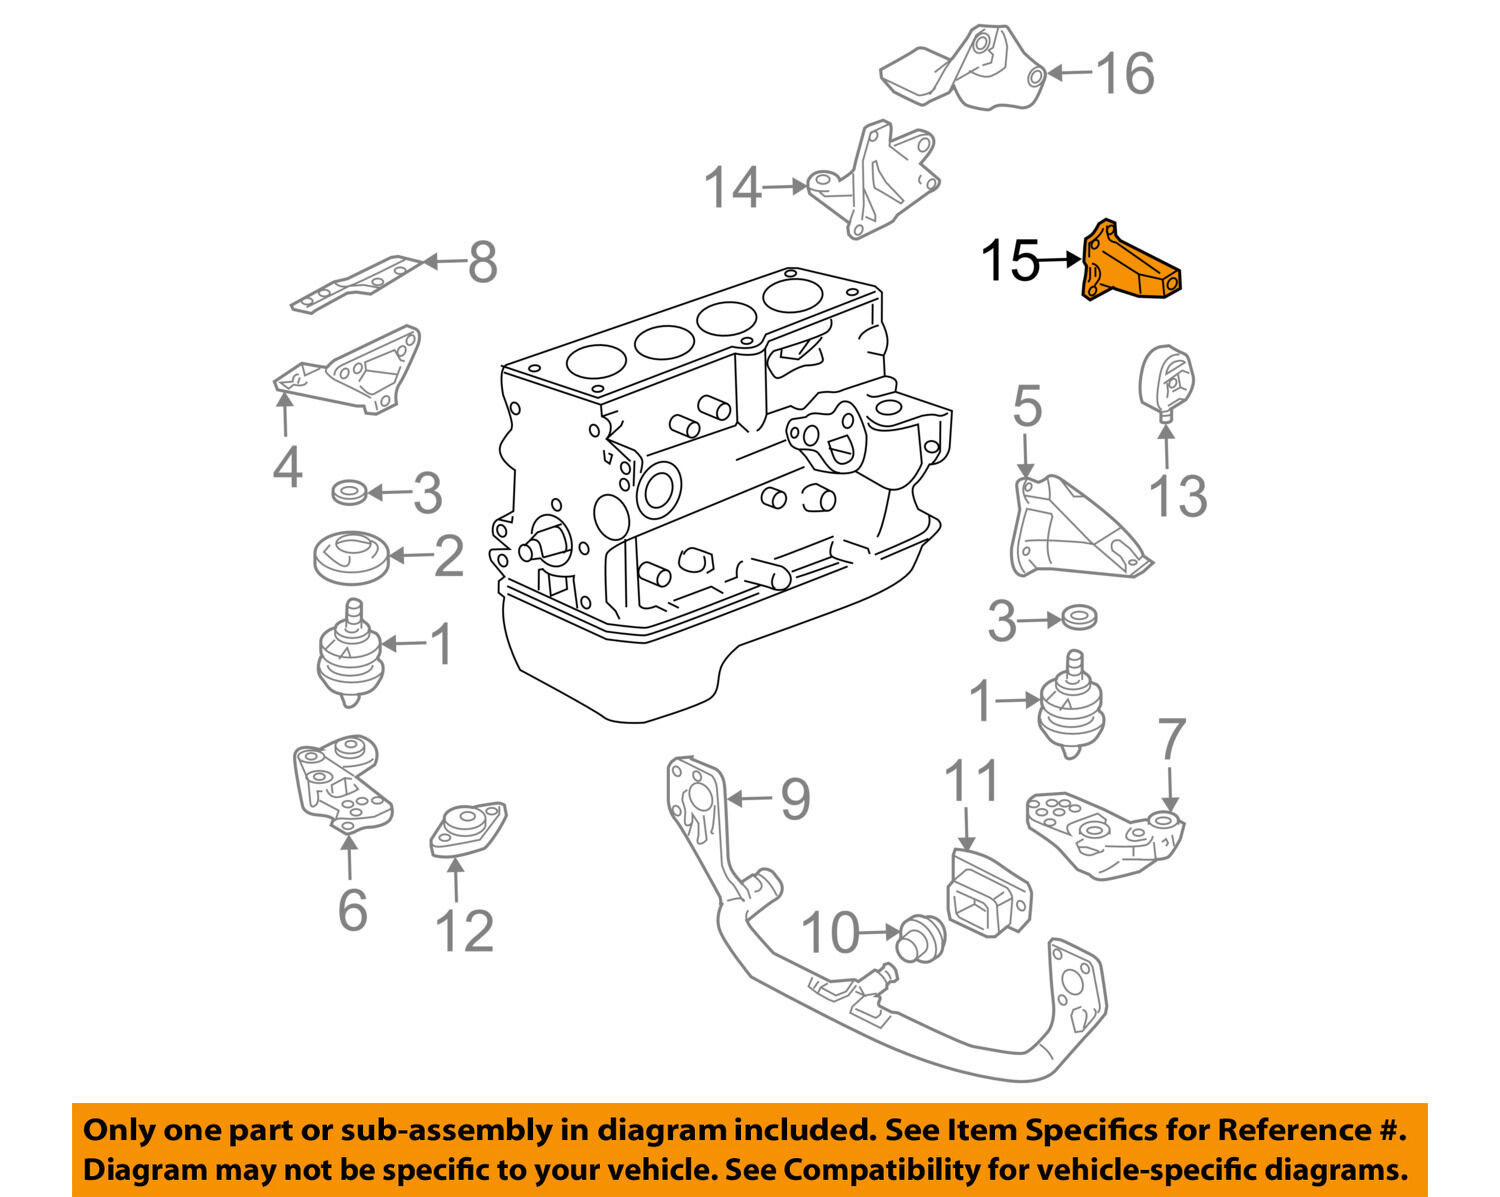 Routan Fuse Box Circuit Diagram Schematic Volkswagen Touareg 2011 Vw Location Wire Electrical